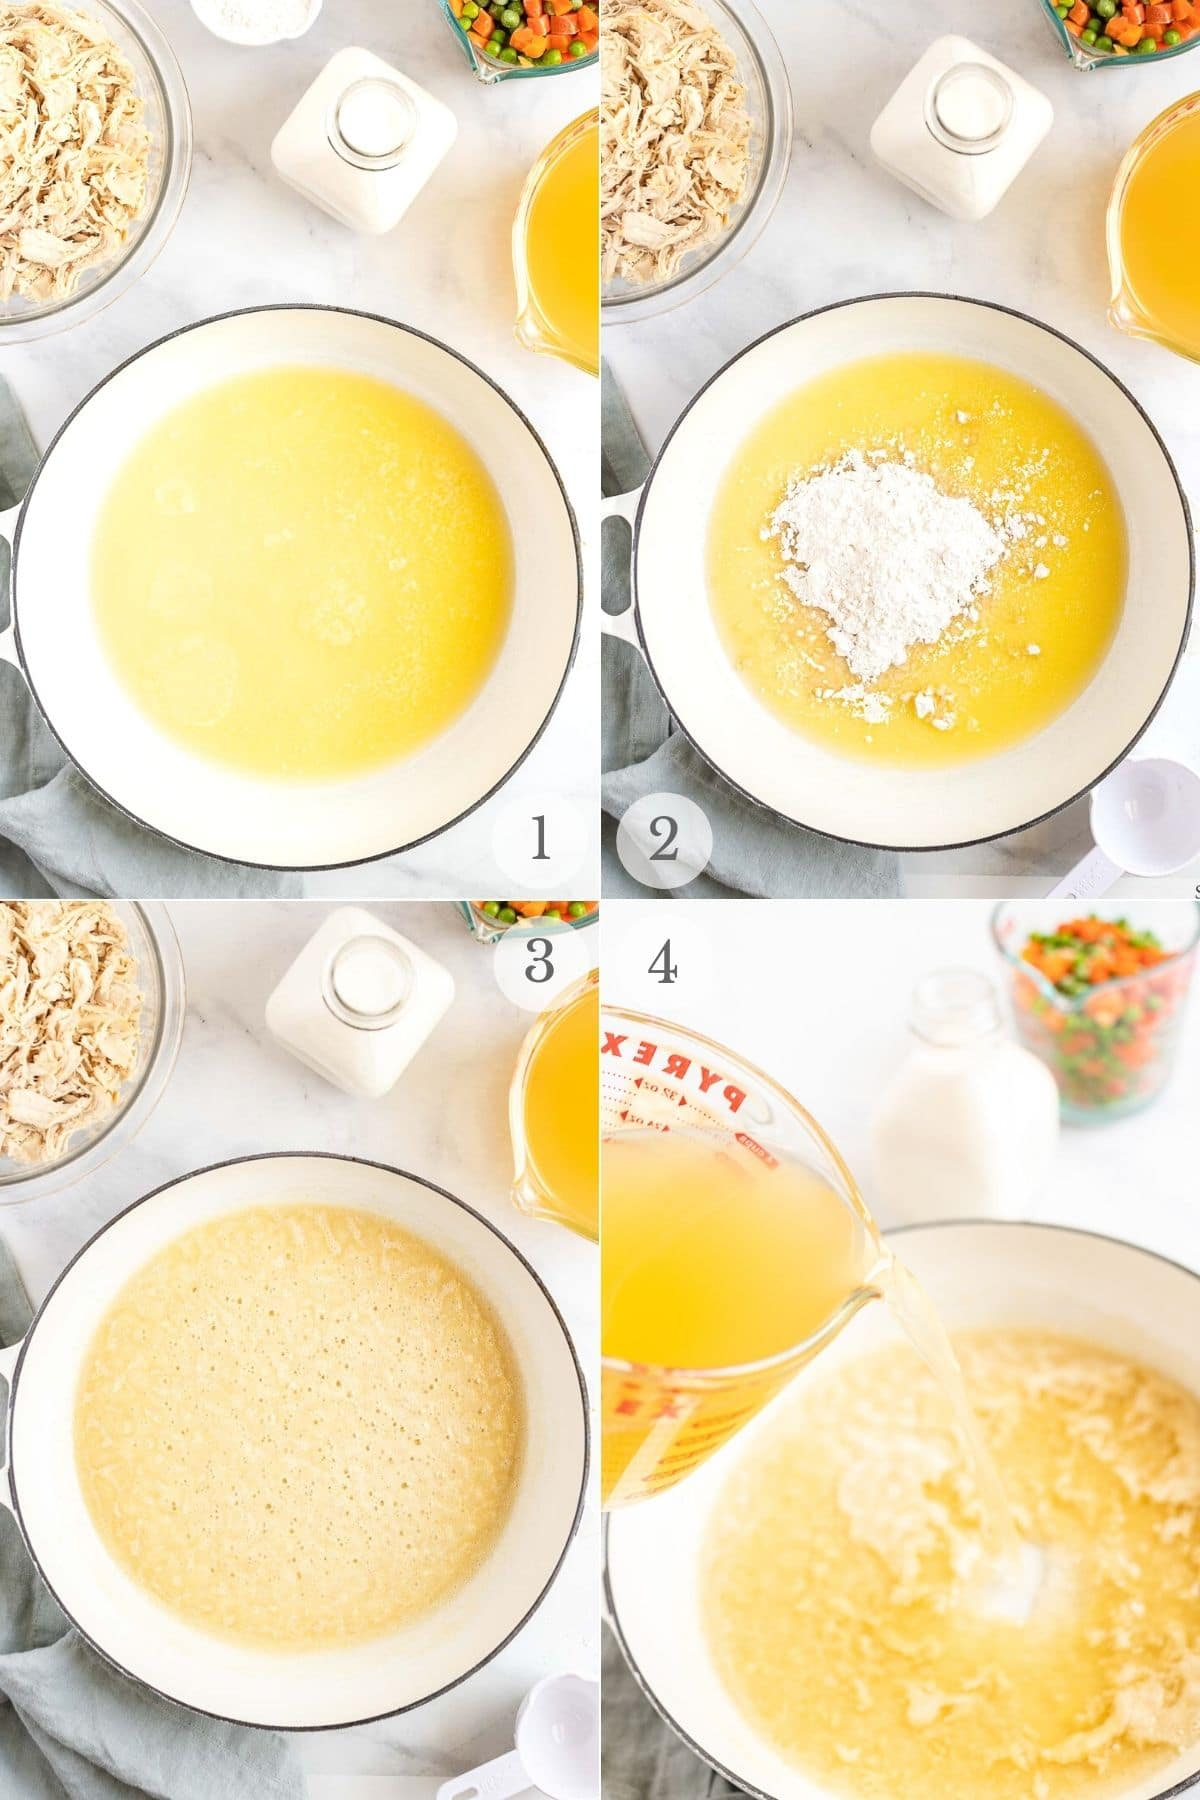 chicken and biscuits recipe steps 1-4